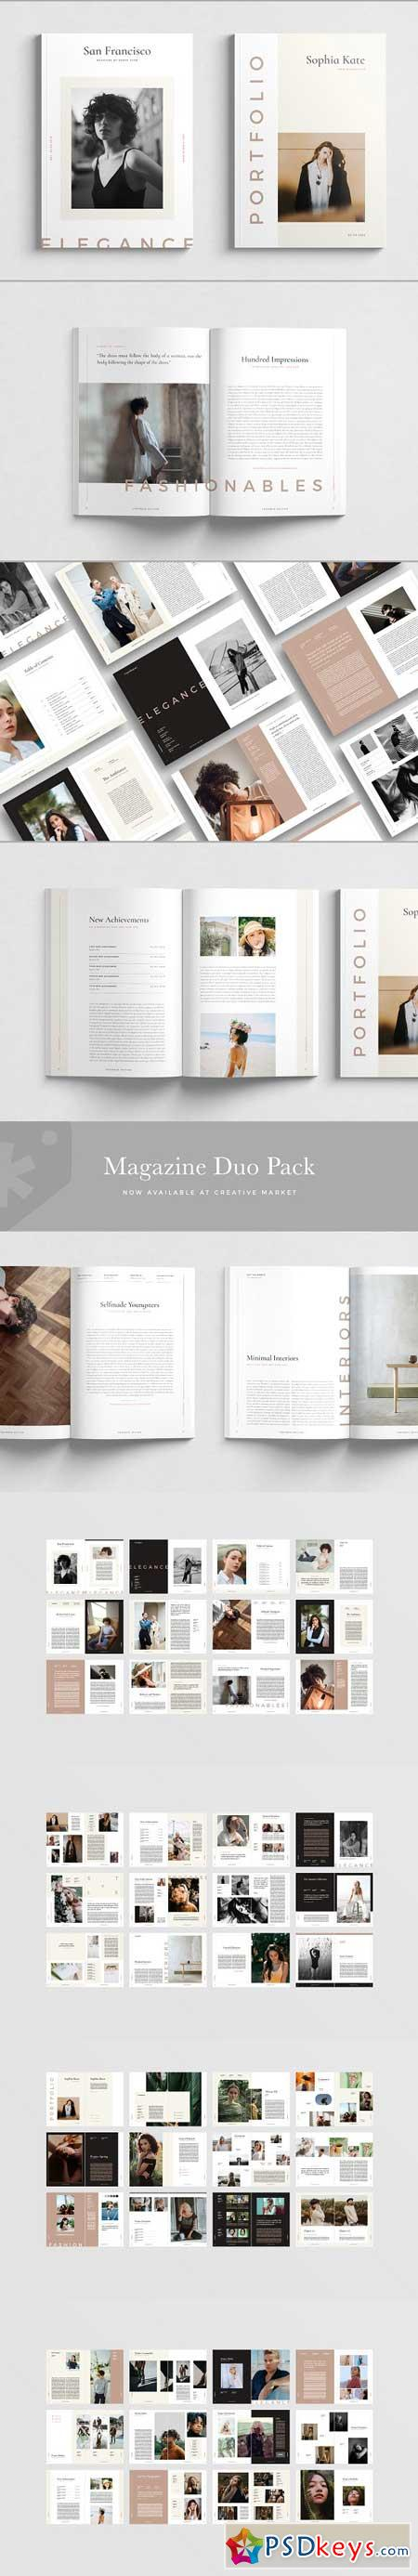 Magazine Duo Pack 3234978